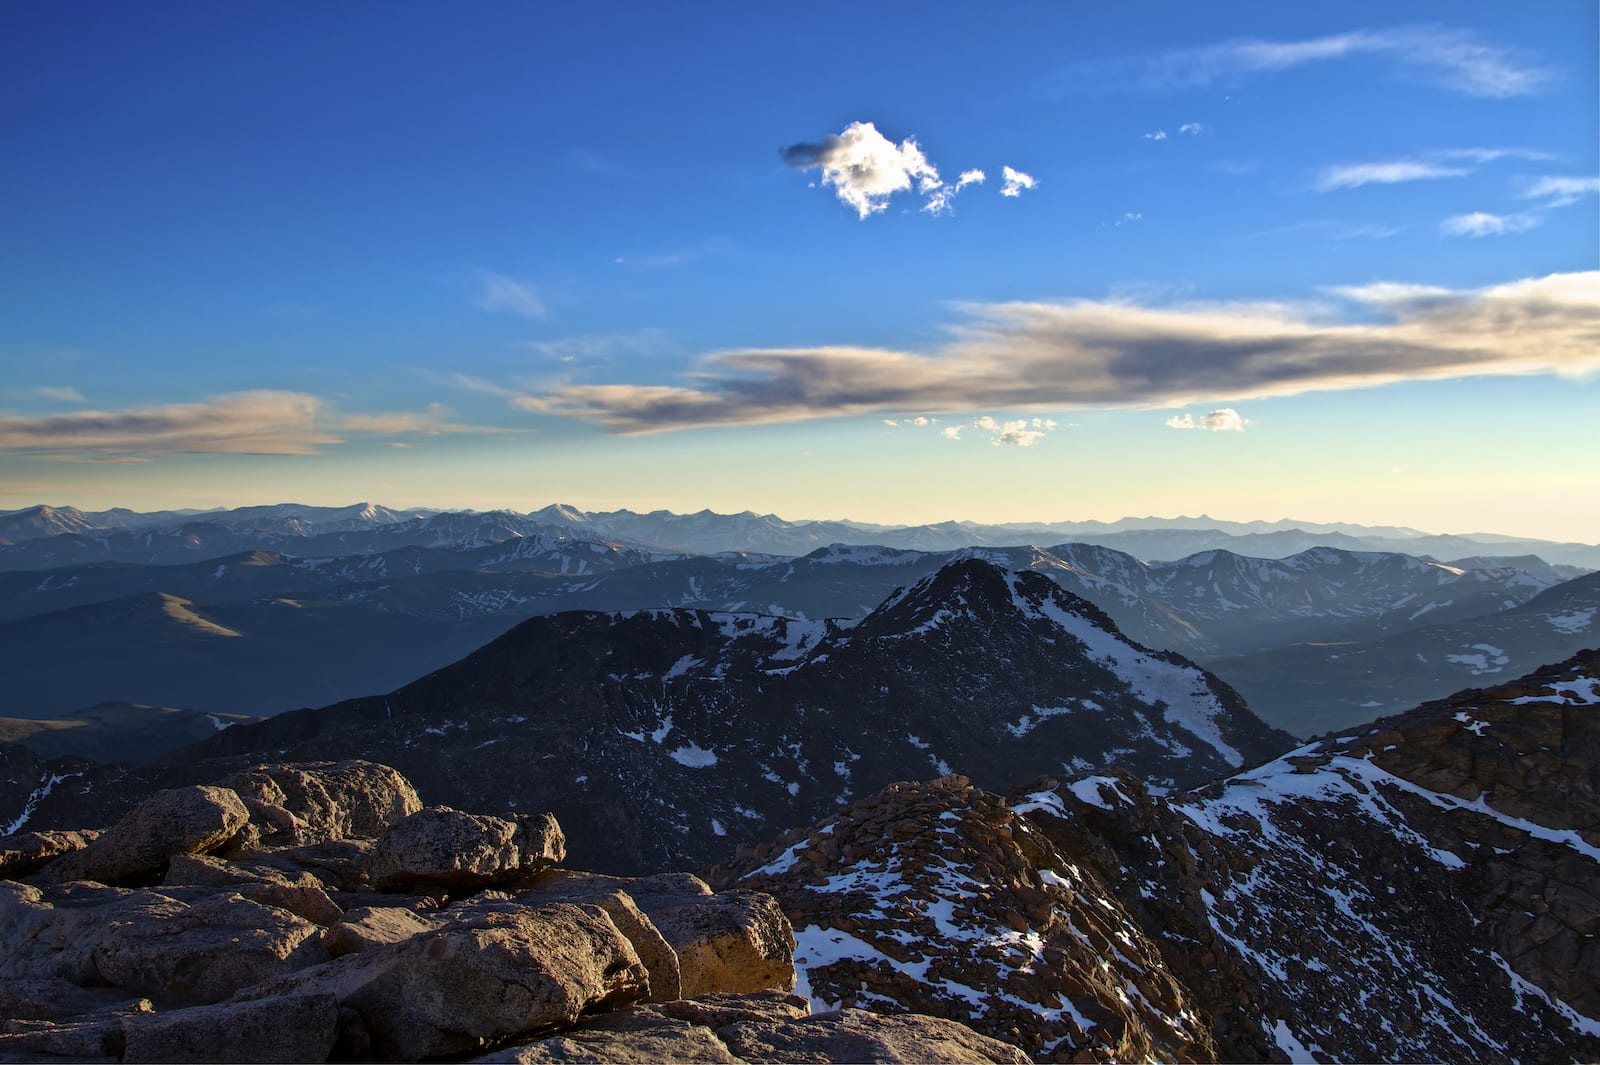 Colorado Front Range Mountains from Atop Mount Evans